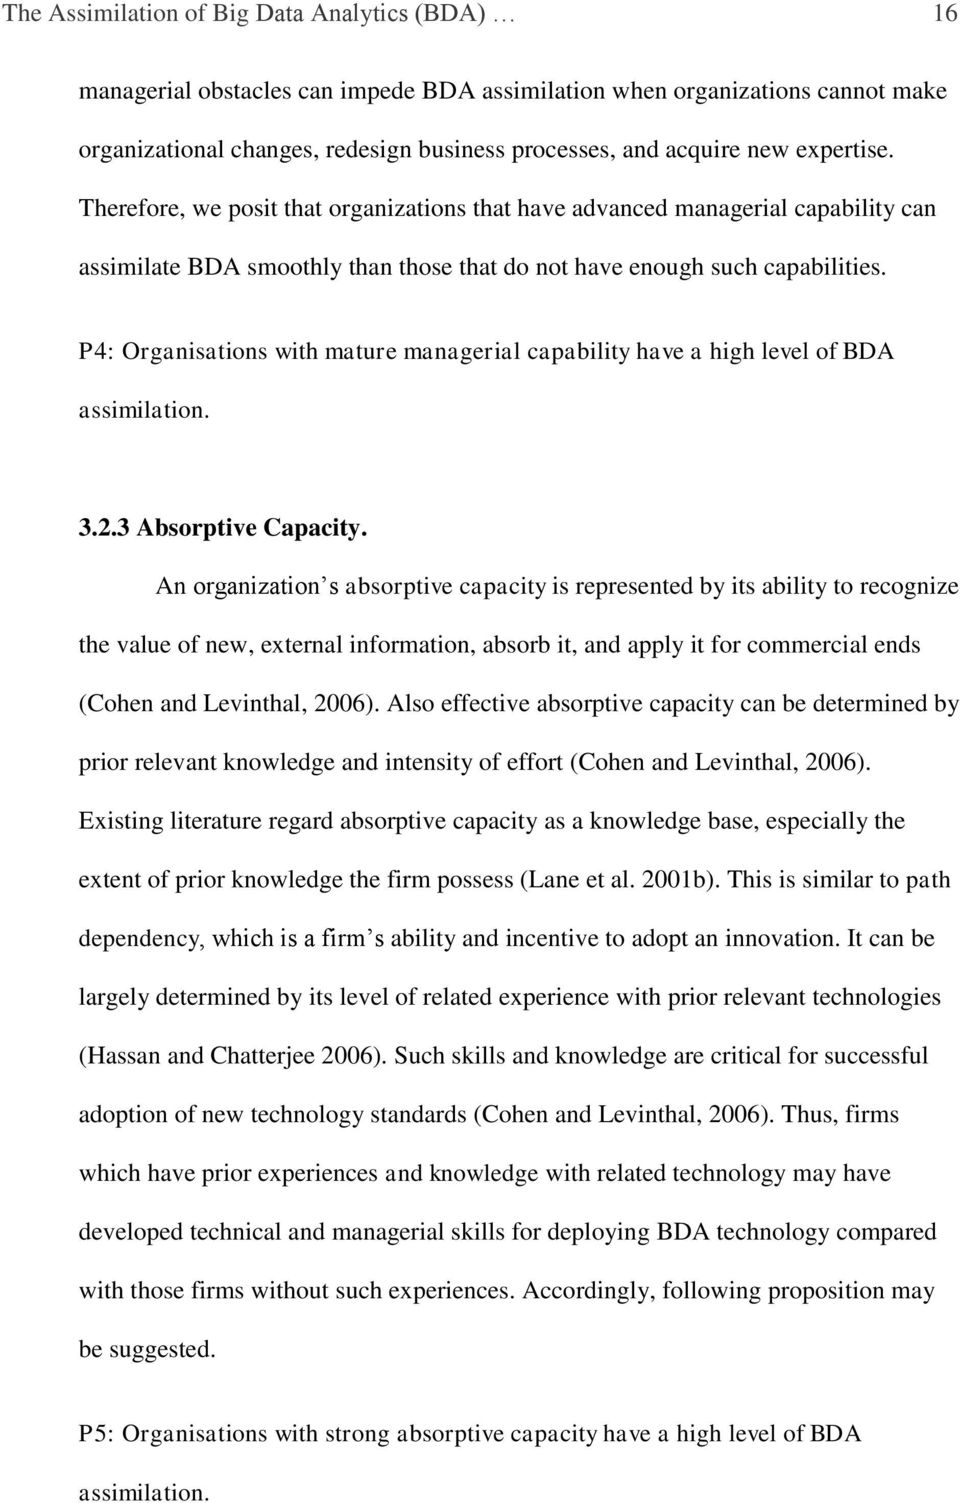 P4: Organisations with mature managerial capability have a high level of BDA assimilation. 3.2.3 Absorptive Capacity.